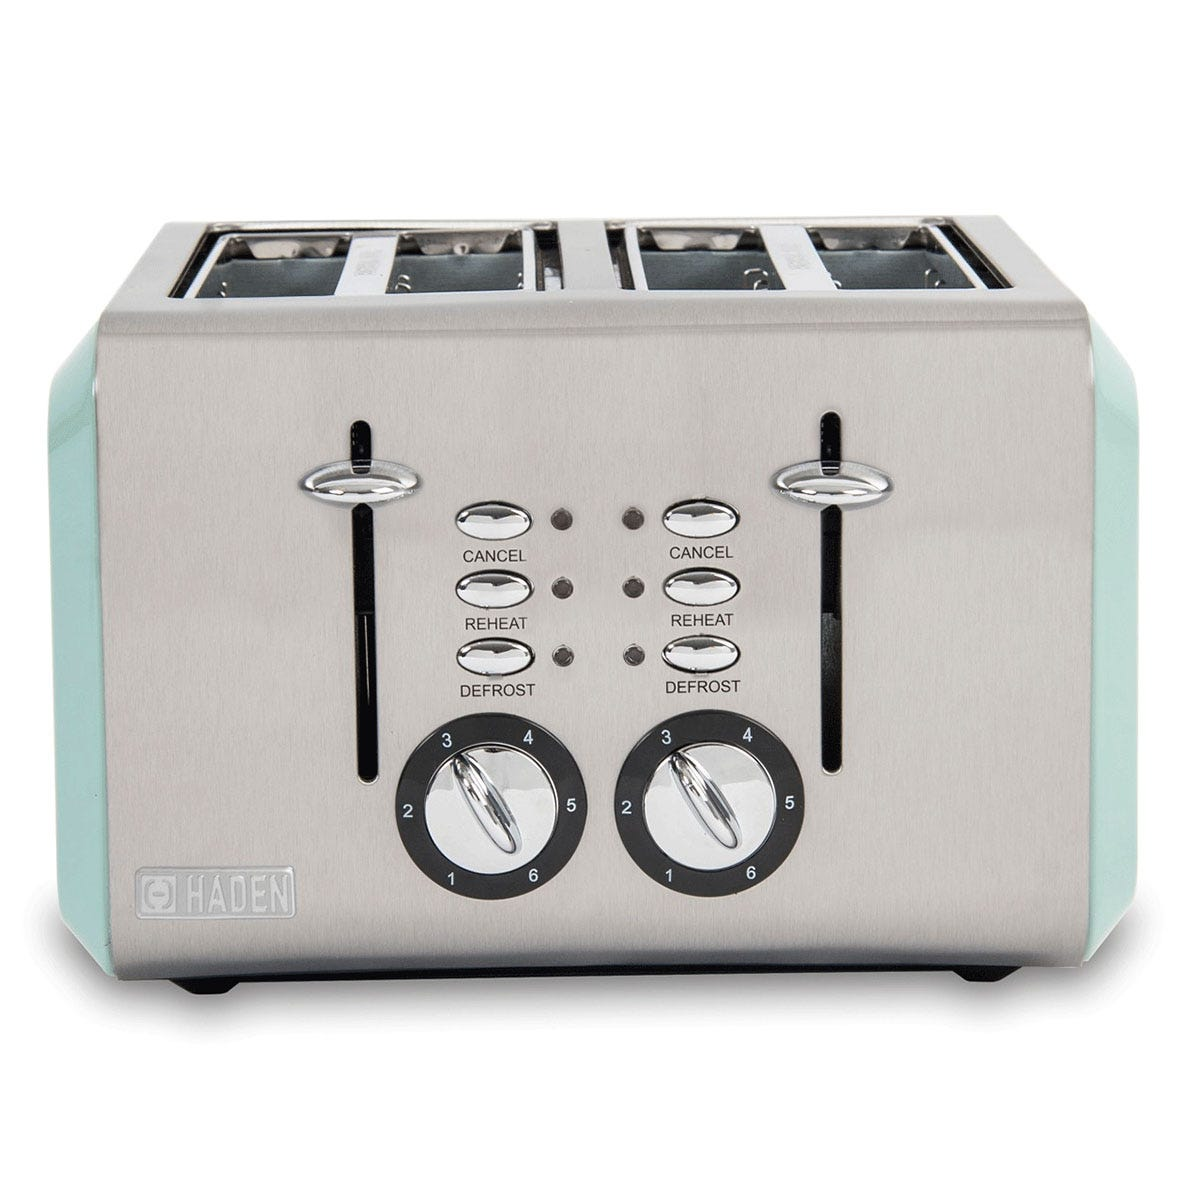 Haden 183774 Cotswold 1960W 4-Slice Toaster - Sage